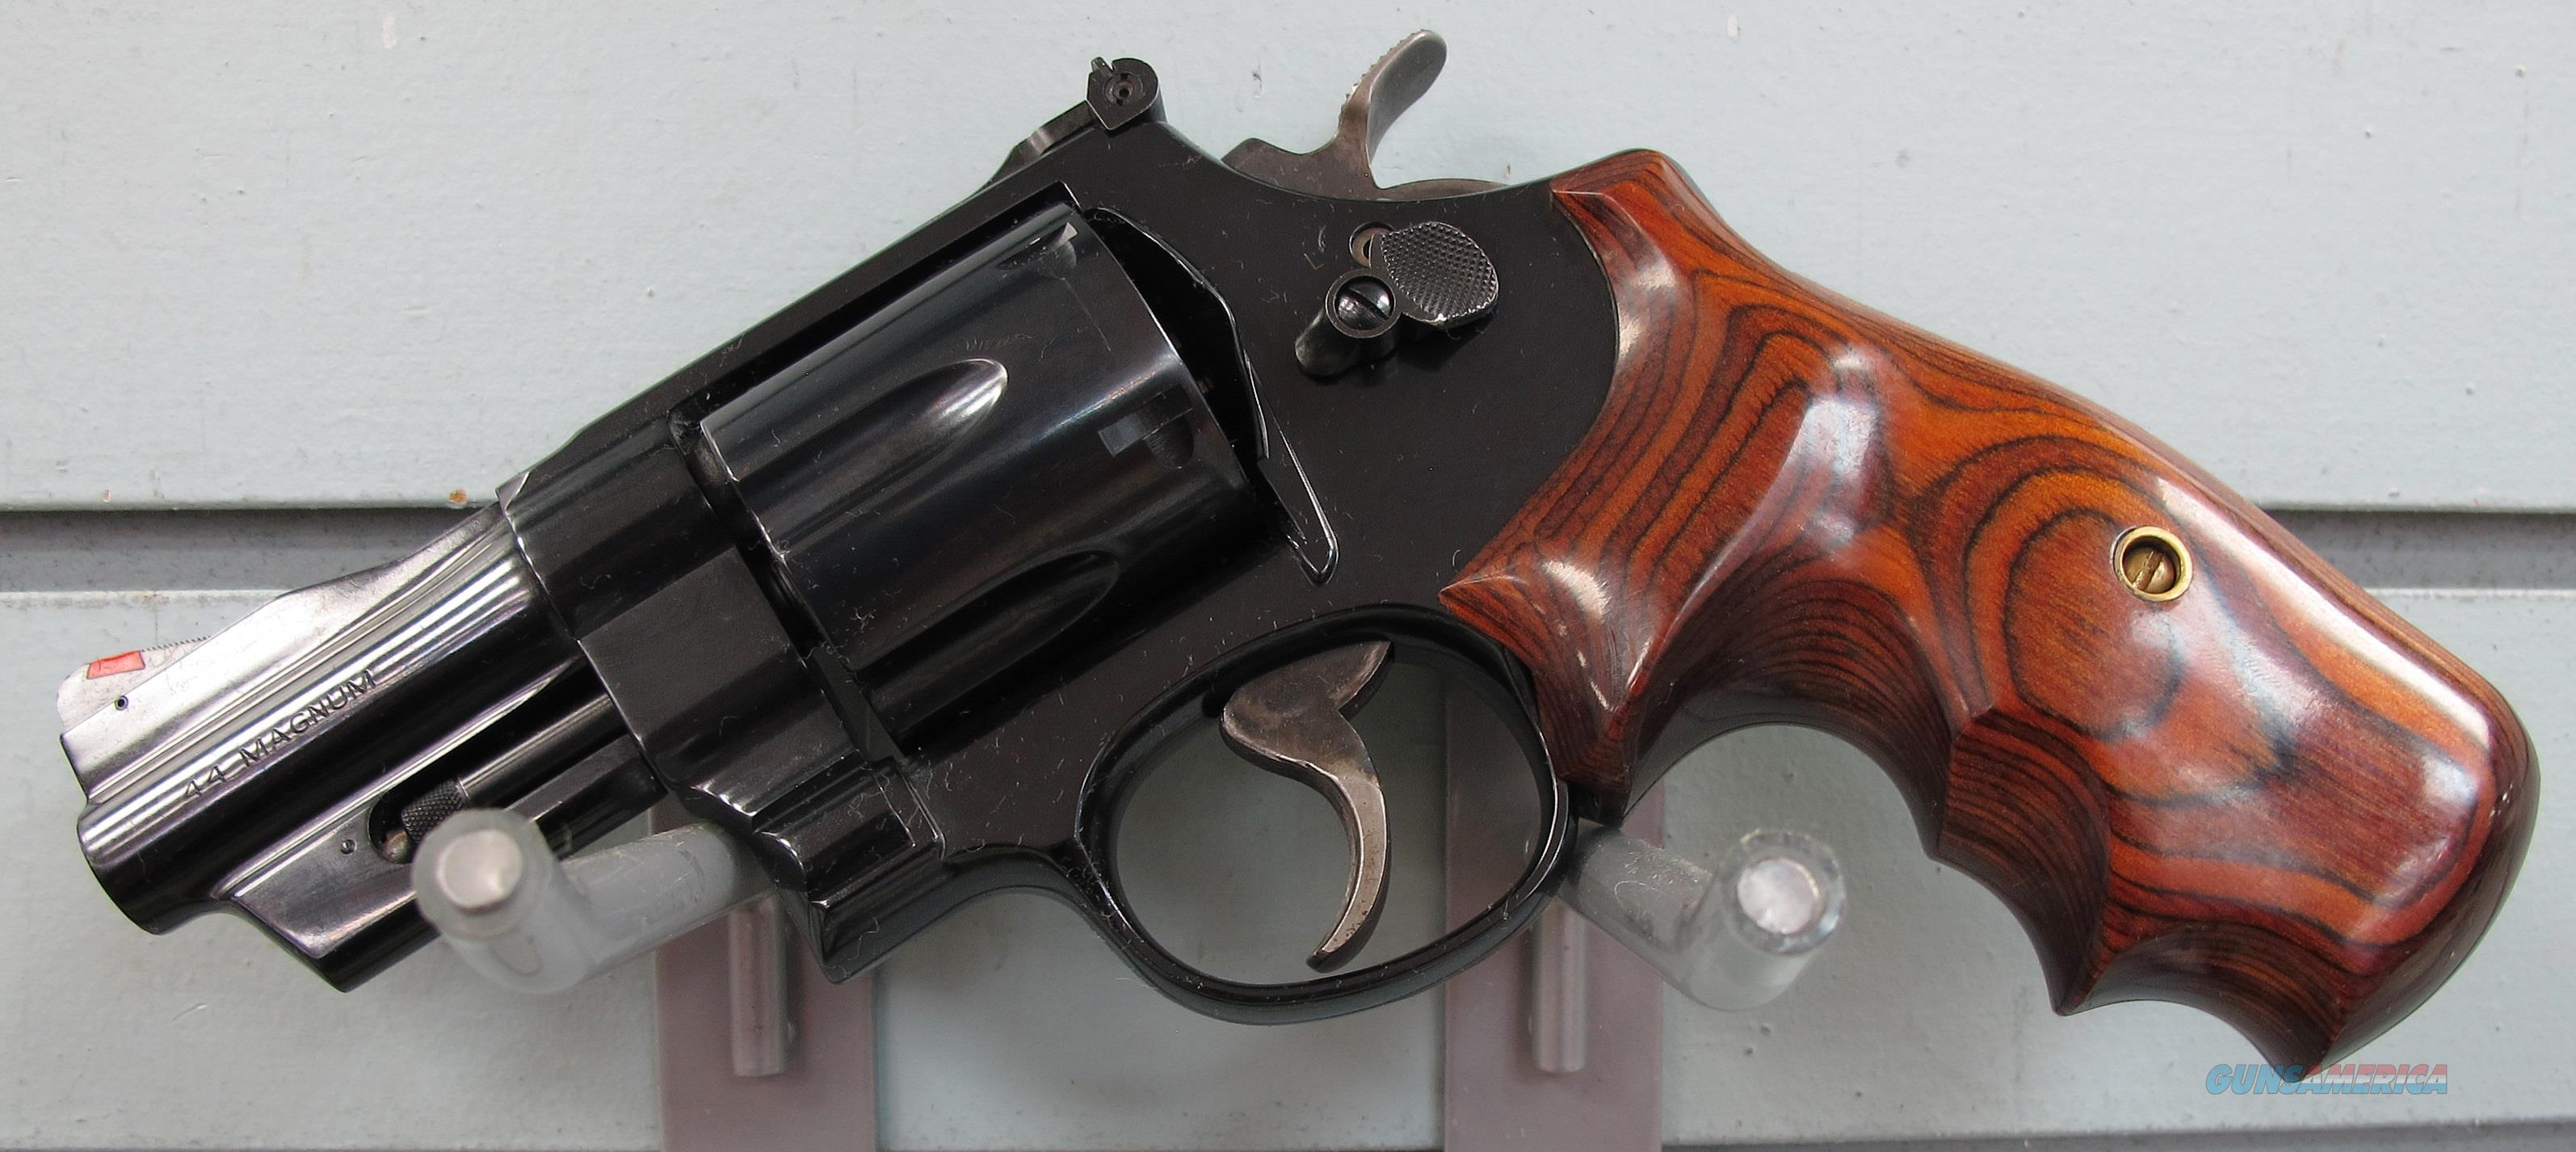 SMITH & WESSON 44 MAGNUM  REVOLVER  Guns > Pistols > Smith & Wesson Revolvers > Full Frame Revolver